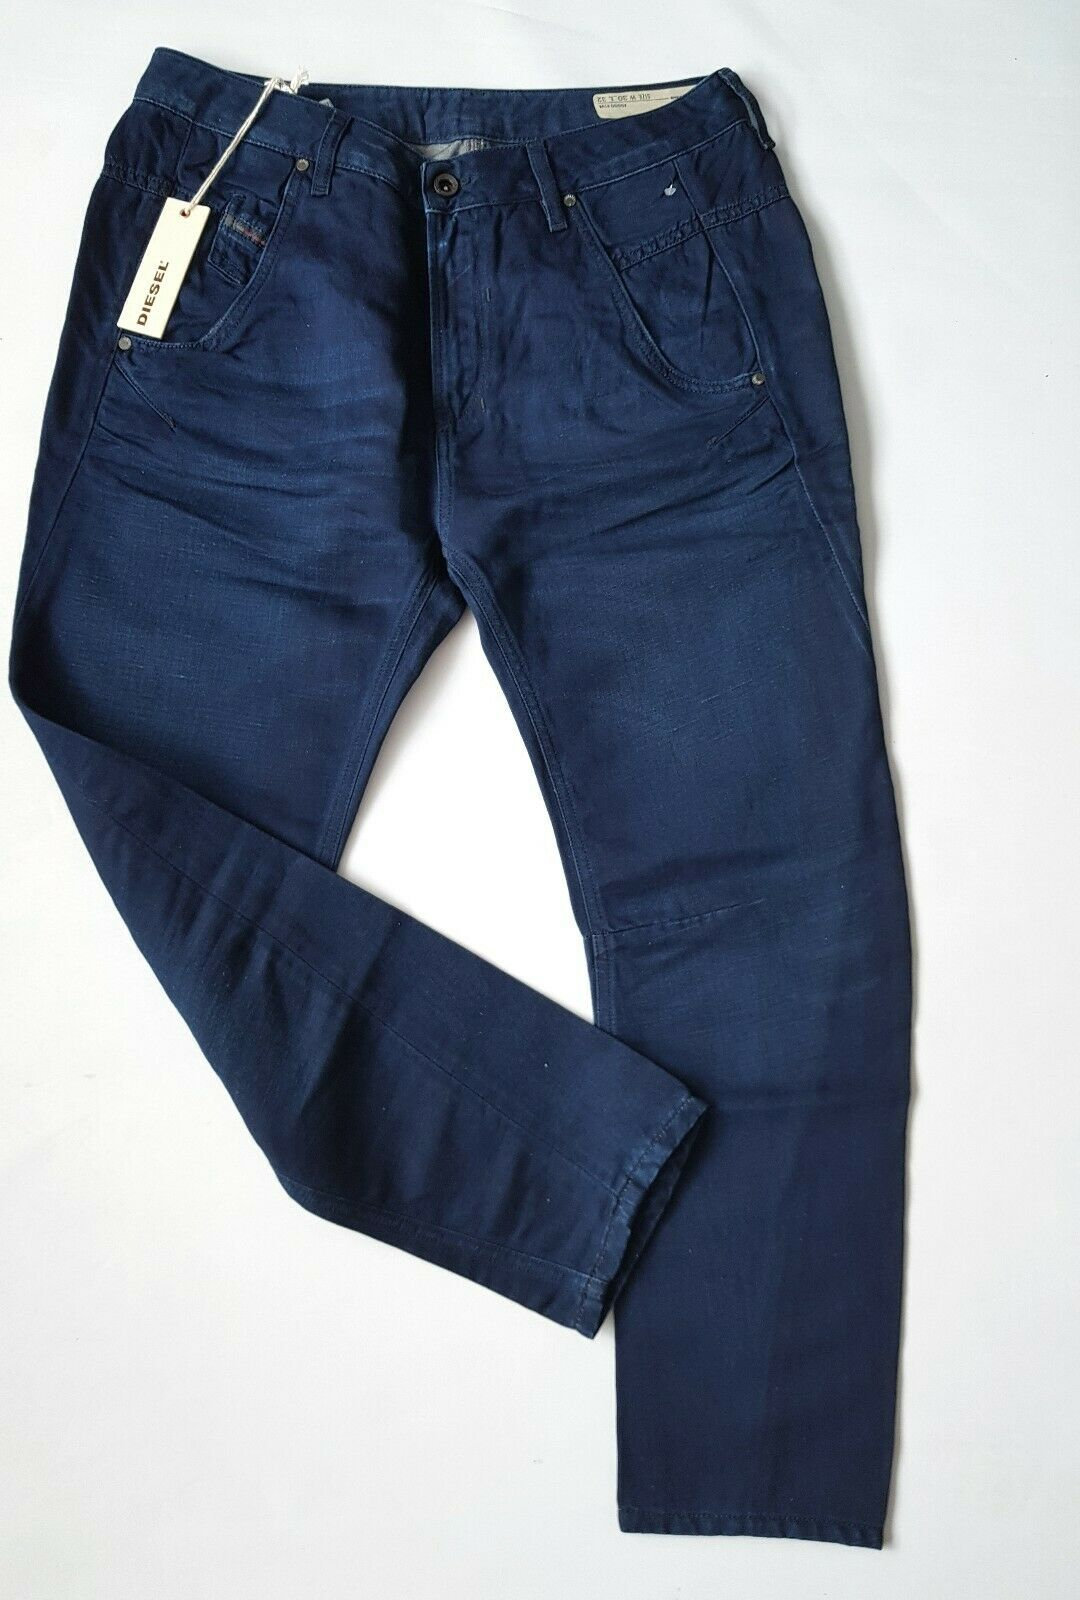 Diesel Fayza tapered cotton- linen trousers navy bluee size 30 32 BNWT RRP